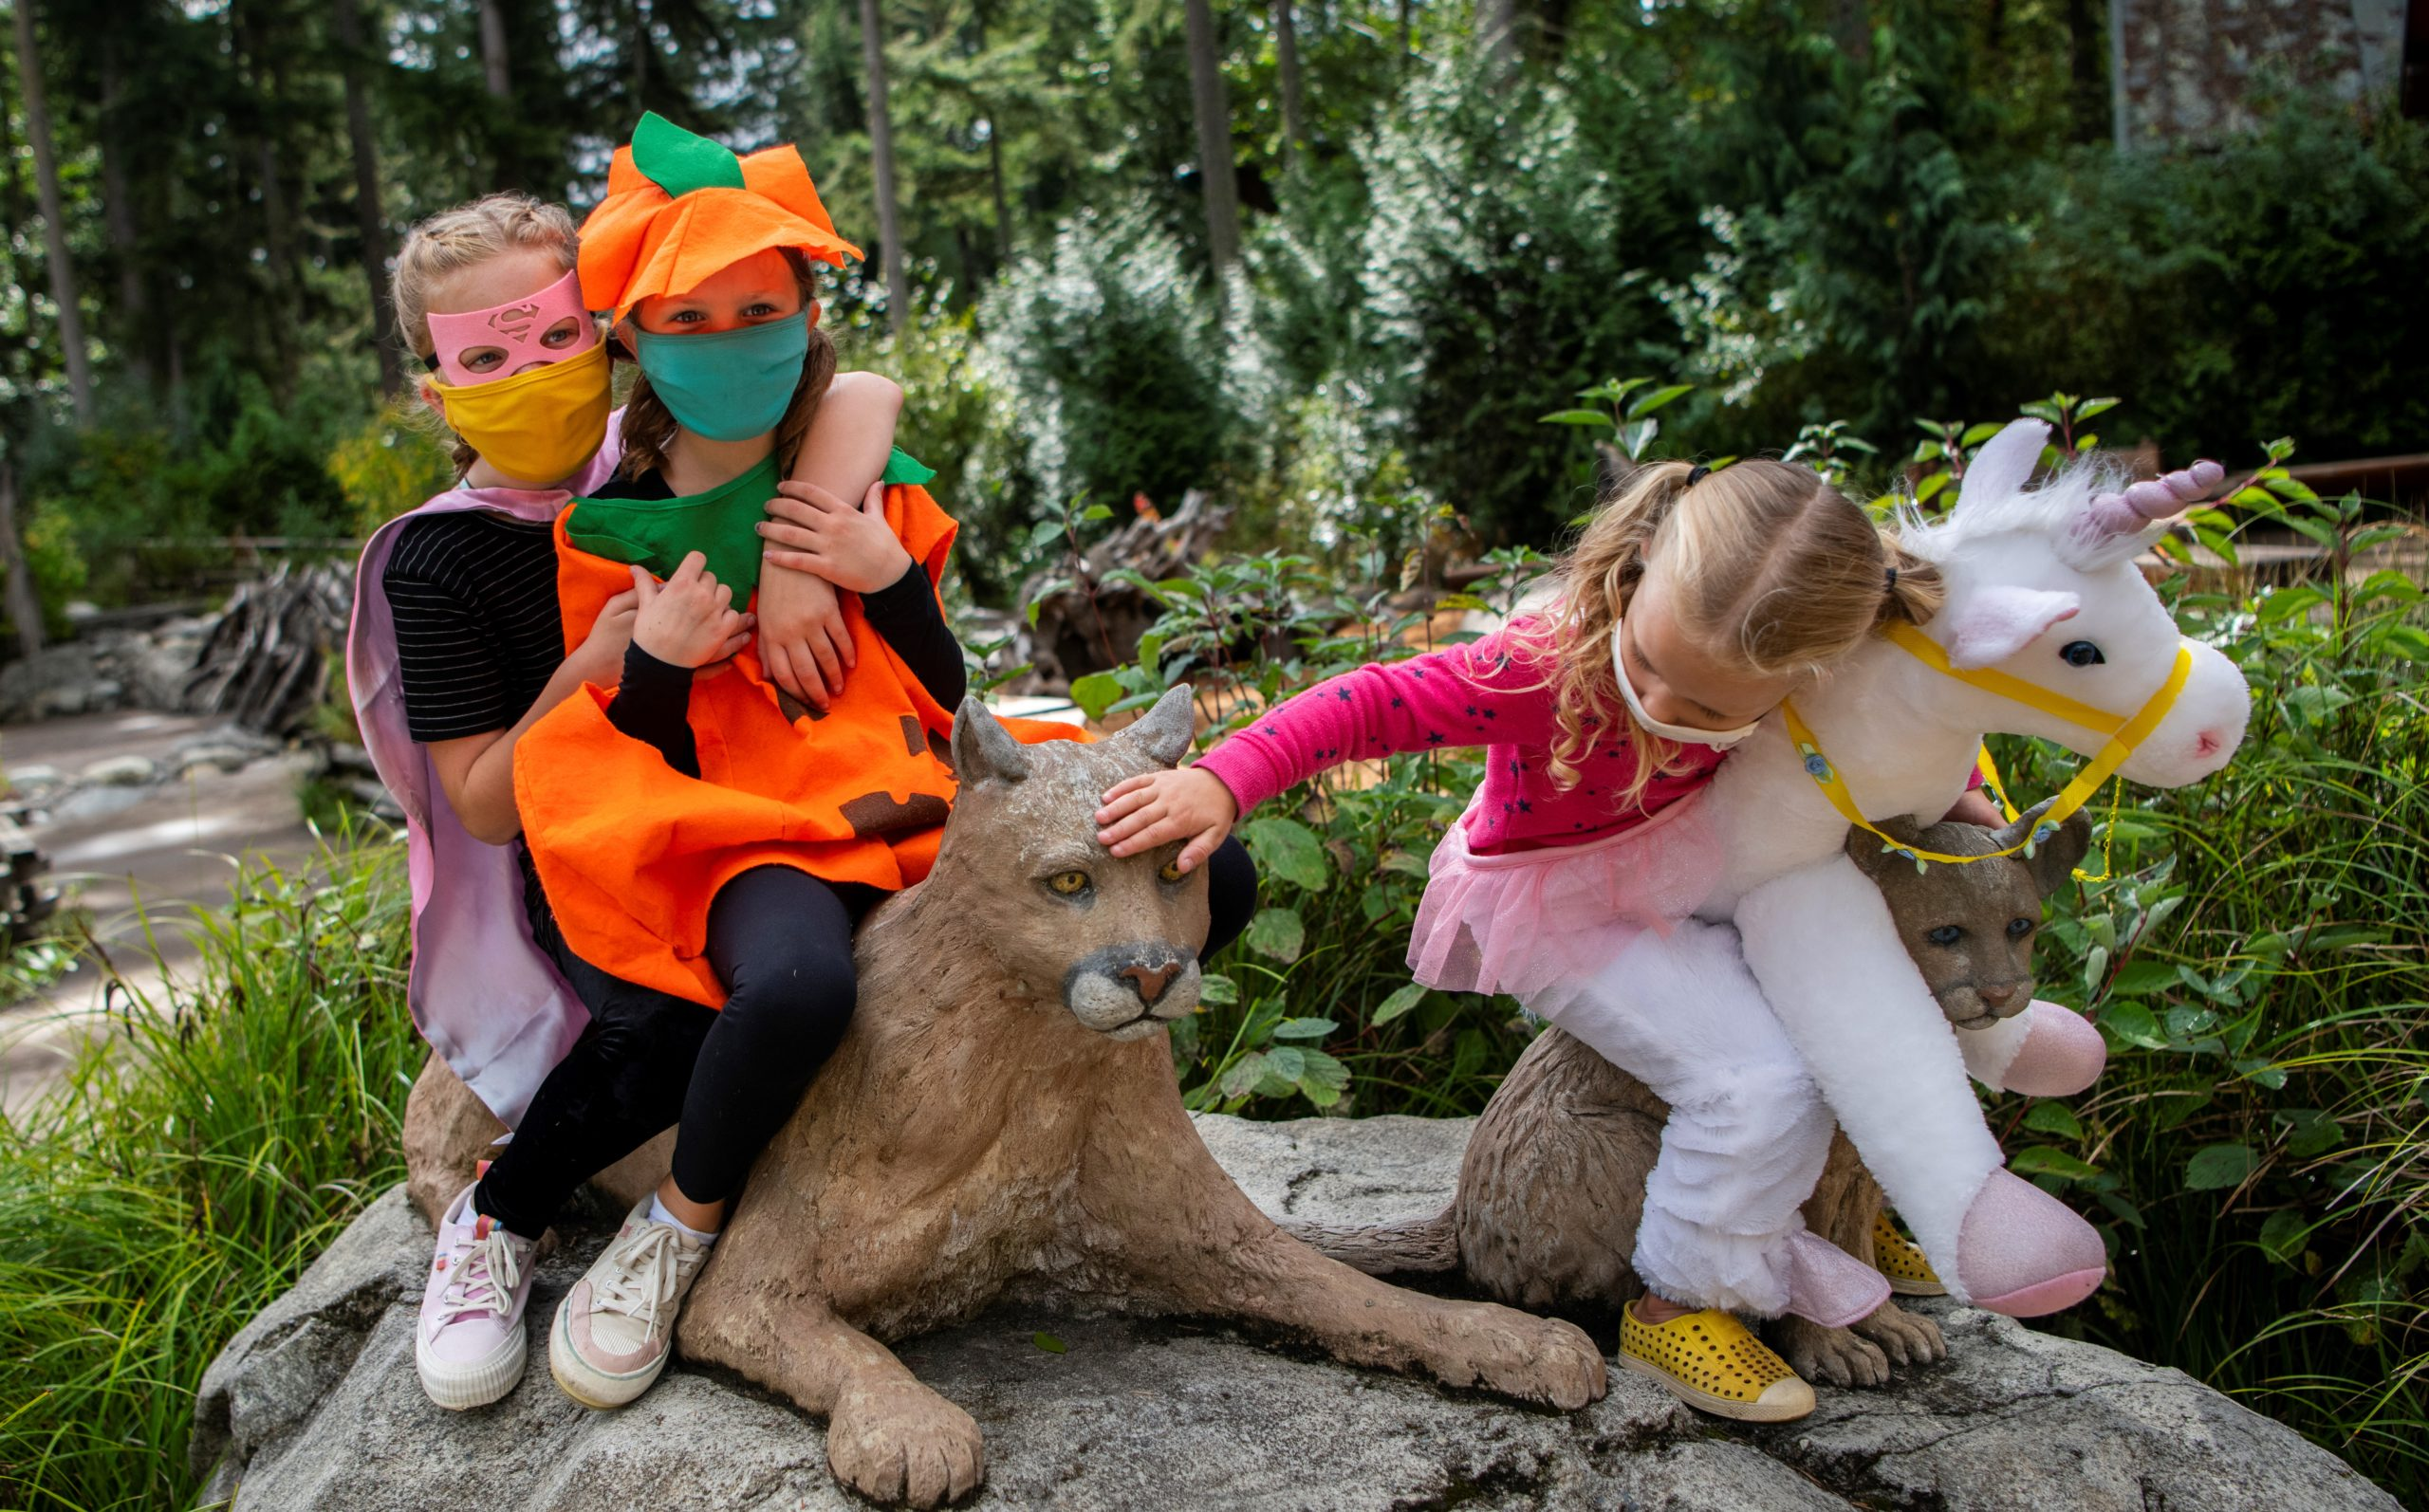 Halloween Downtown Olympia 2020 In person Halloween events near Seattle, 2020 | Seattle's Child